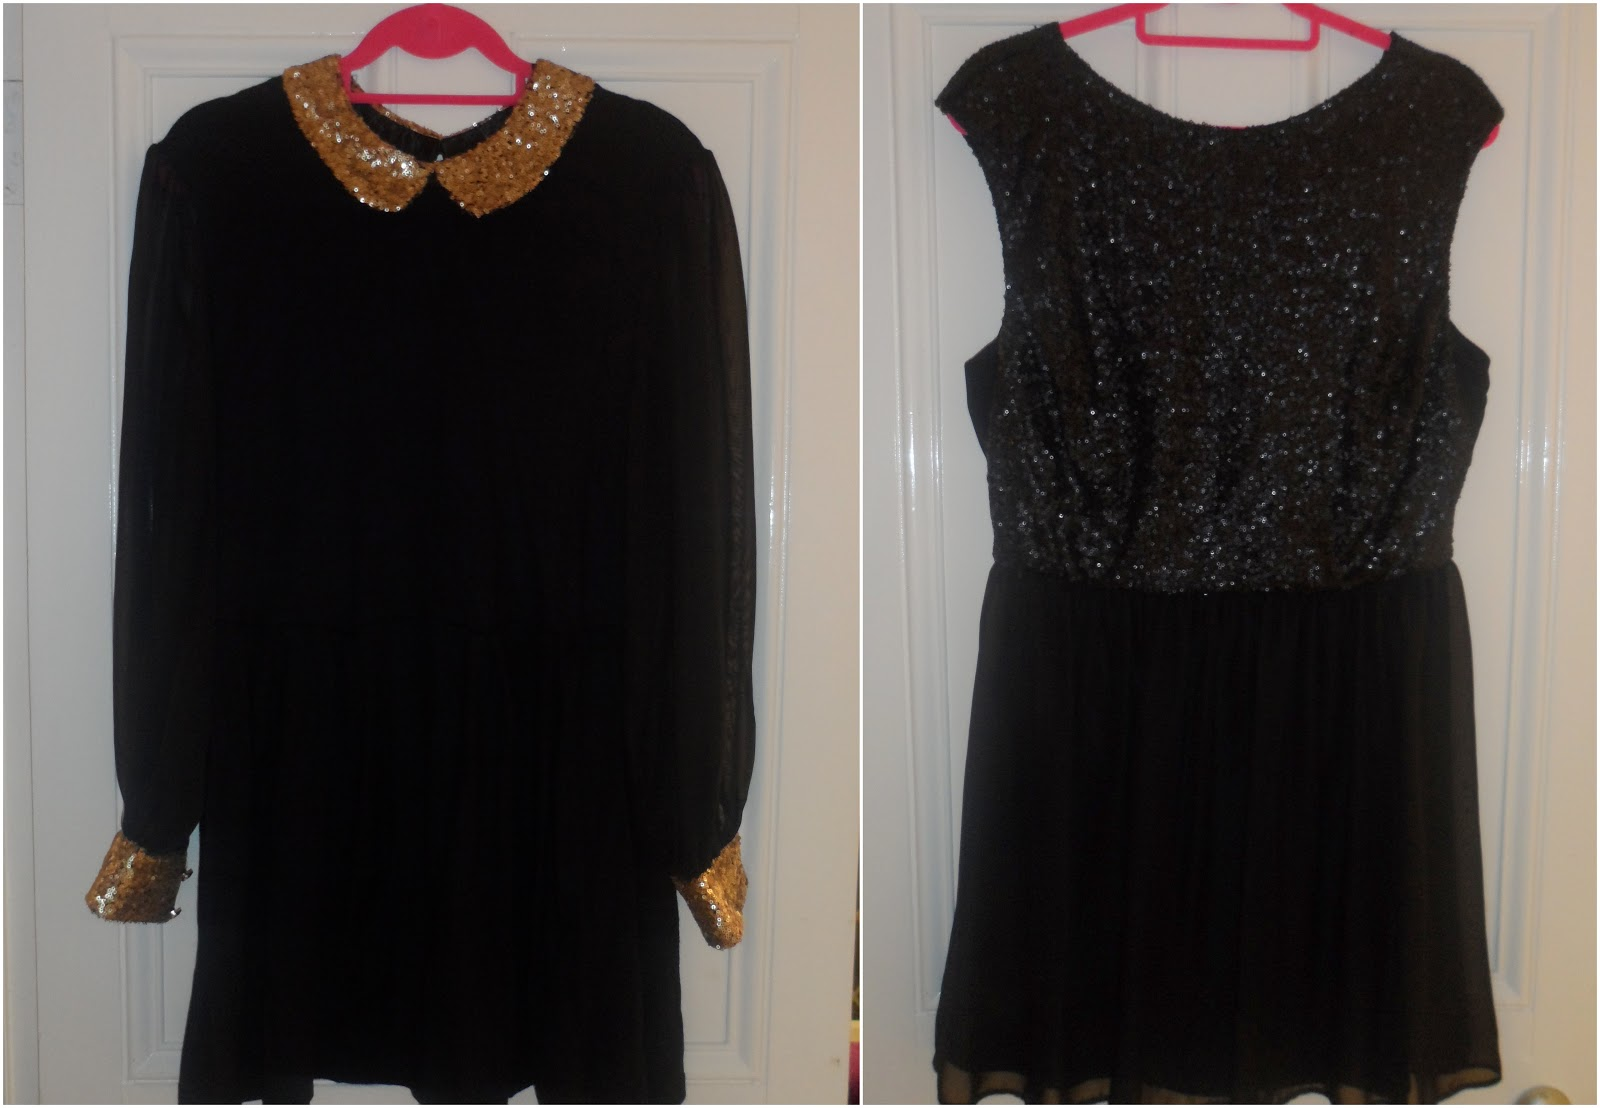 Primark black dress with white collar and cuffs